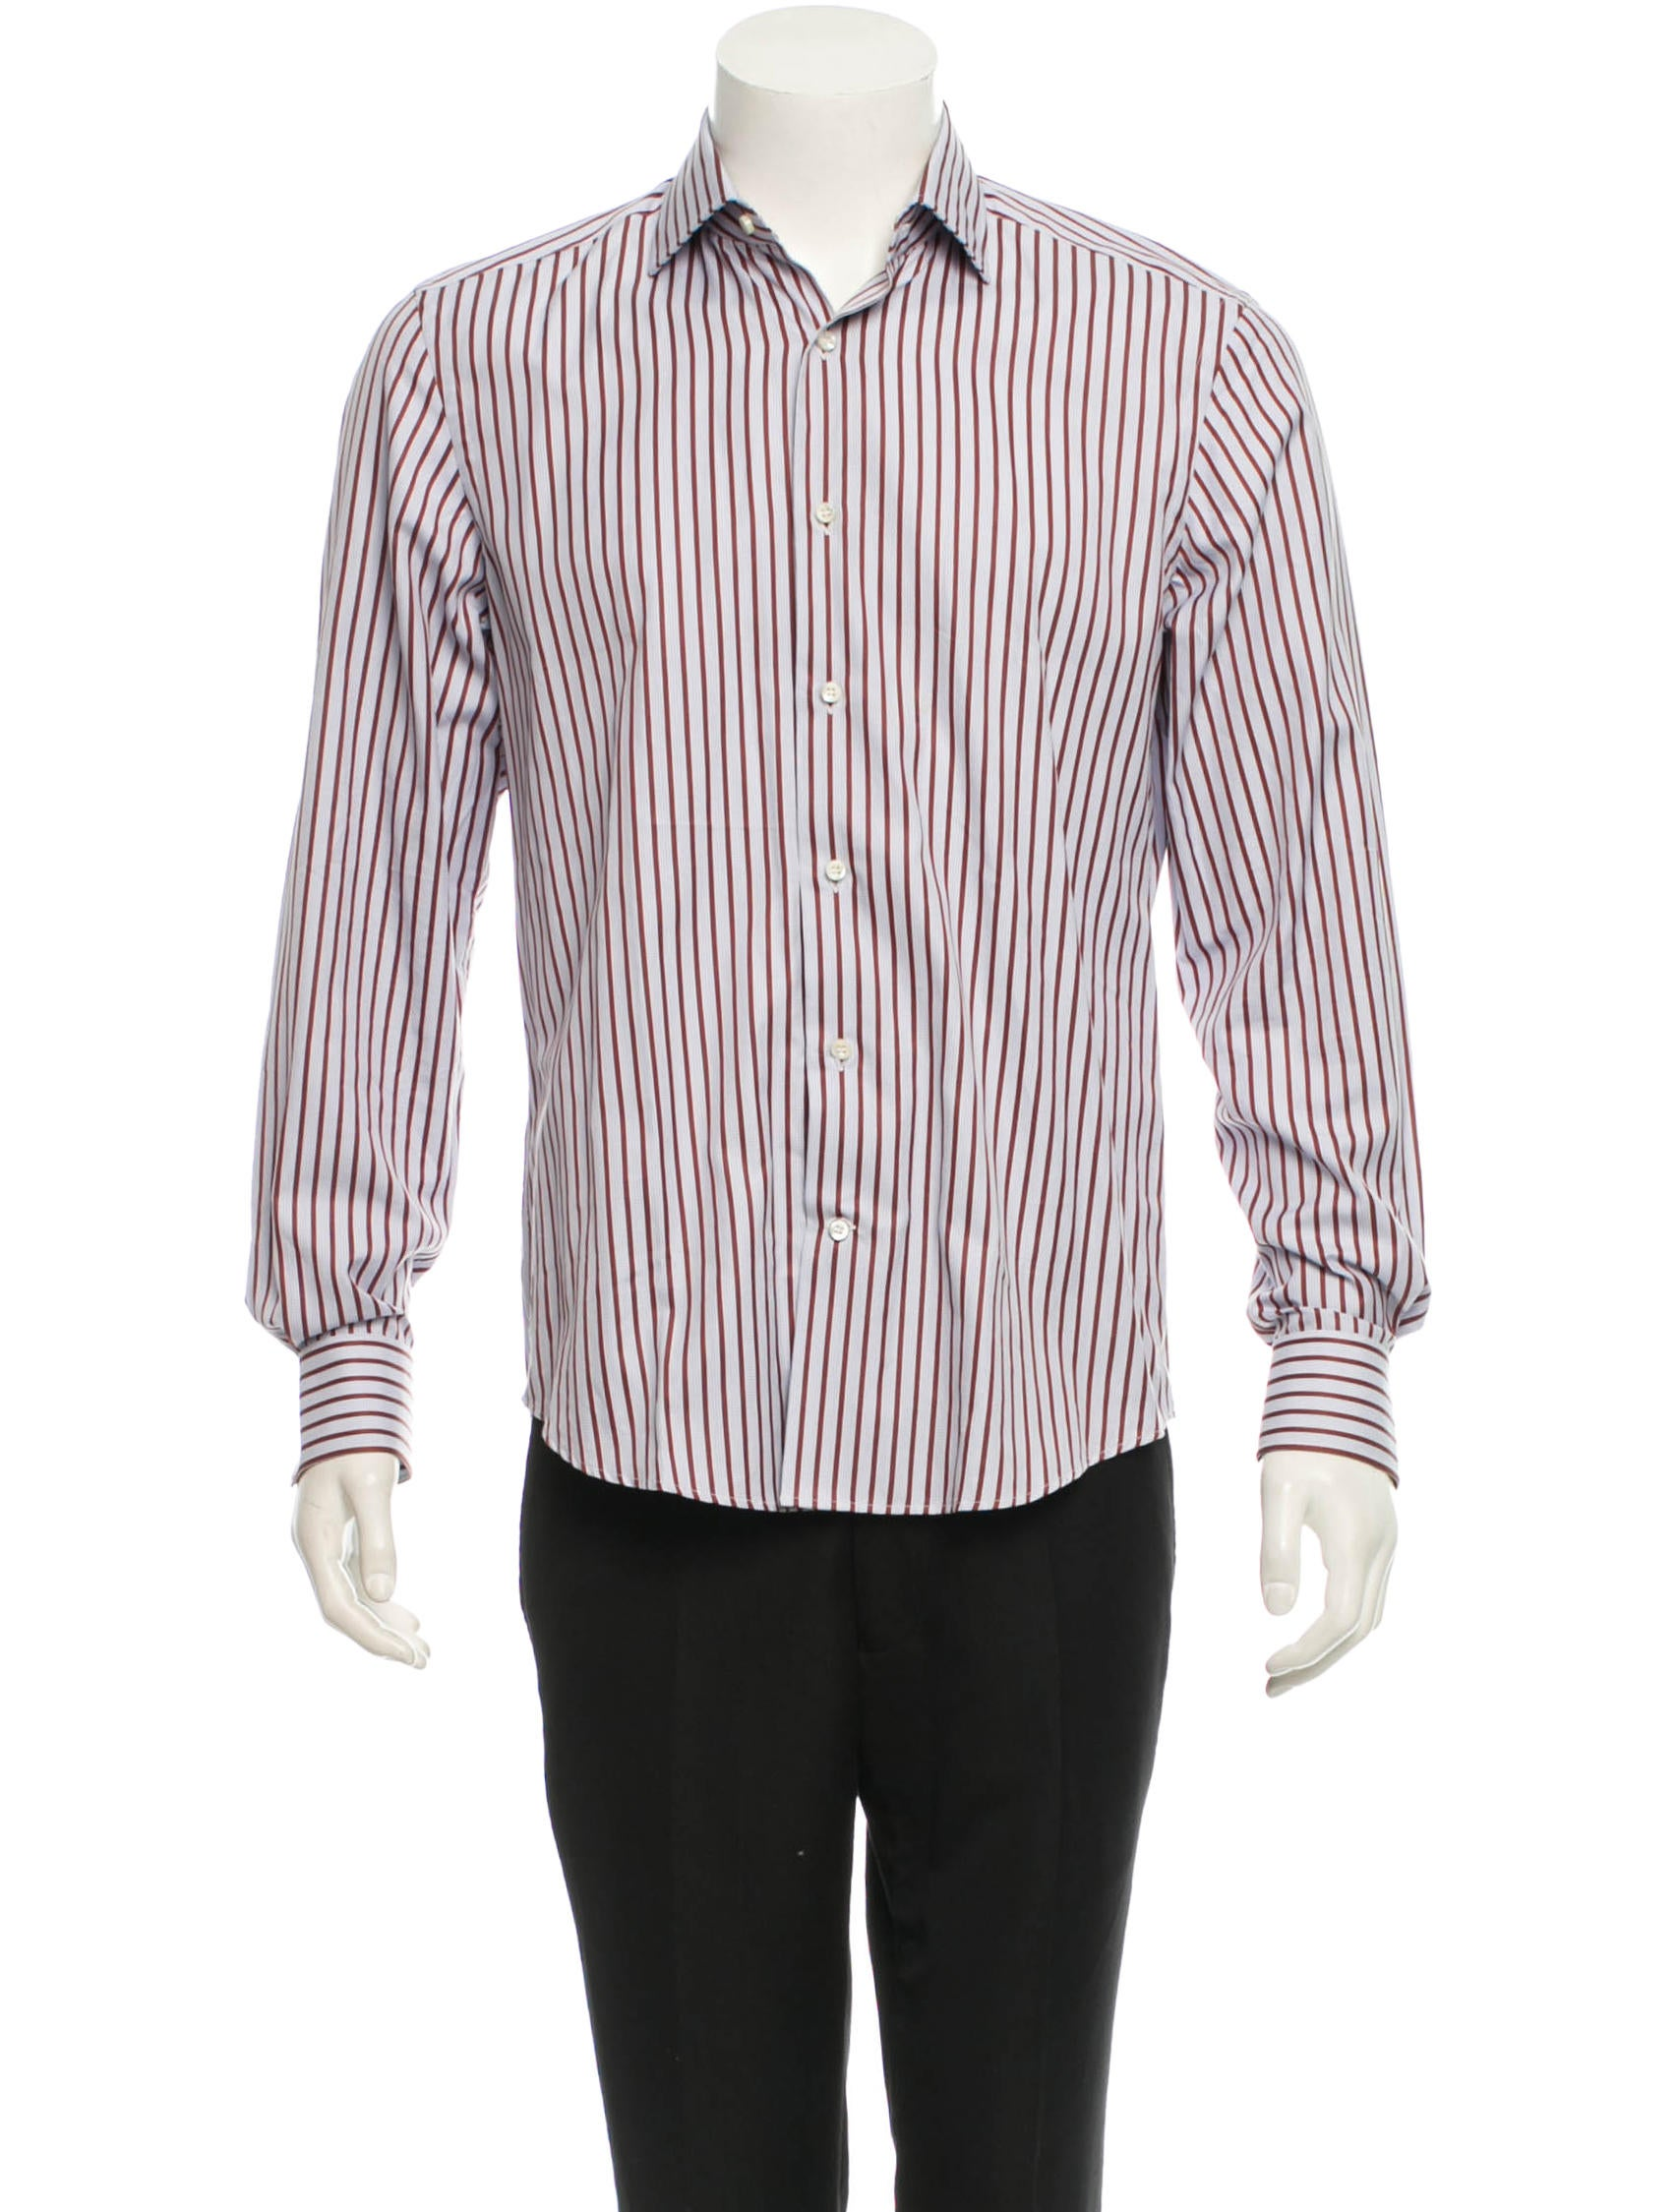 Salvatore Ferragamo Shirt - Clothing - SAL24065 - The RealReal